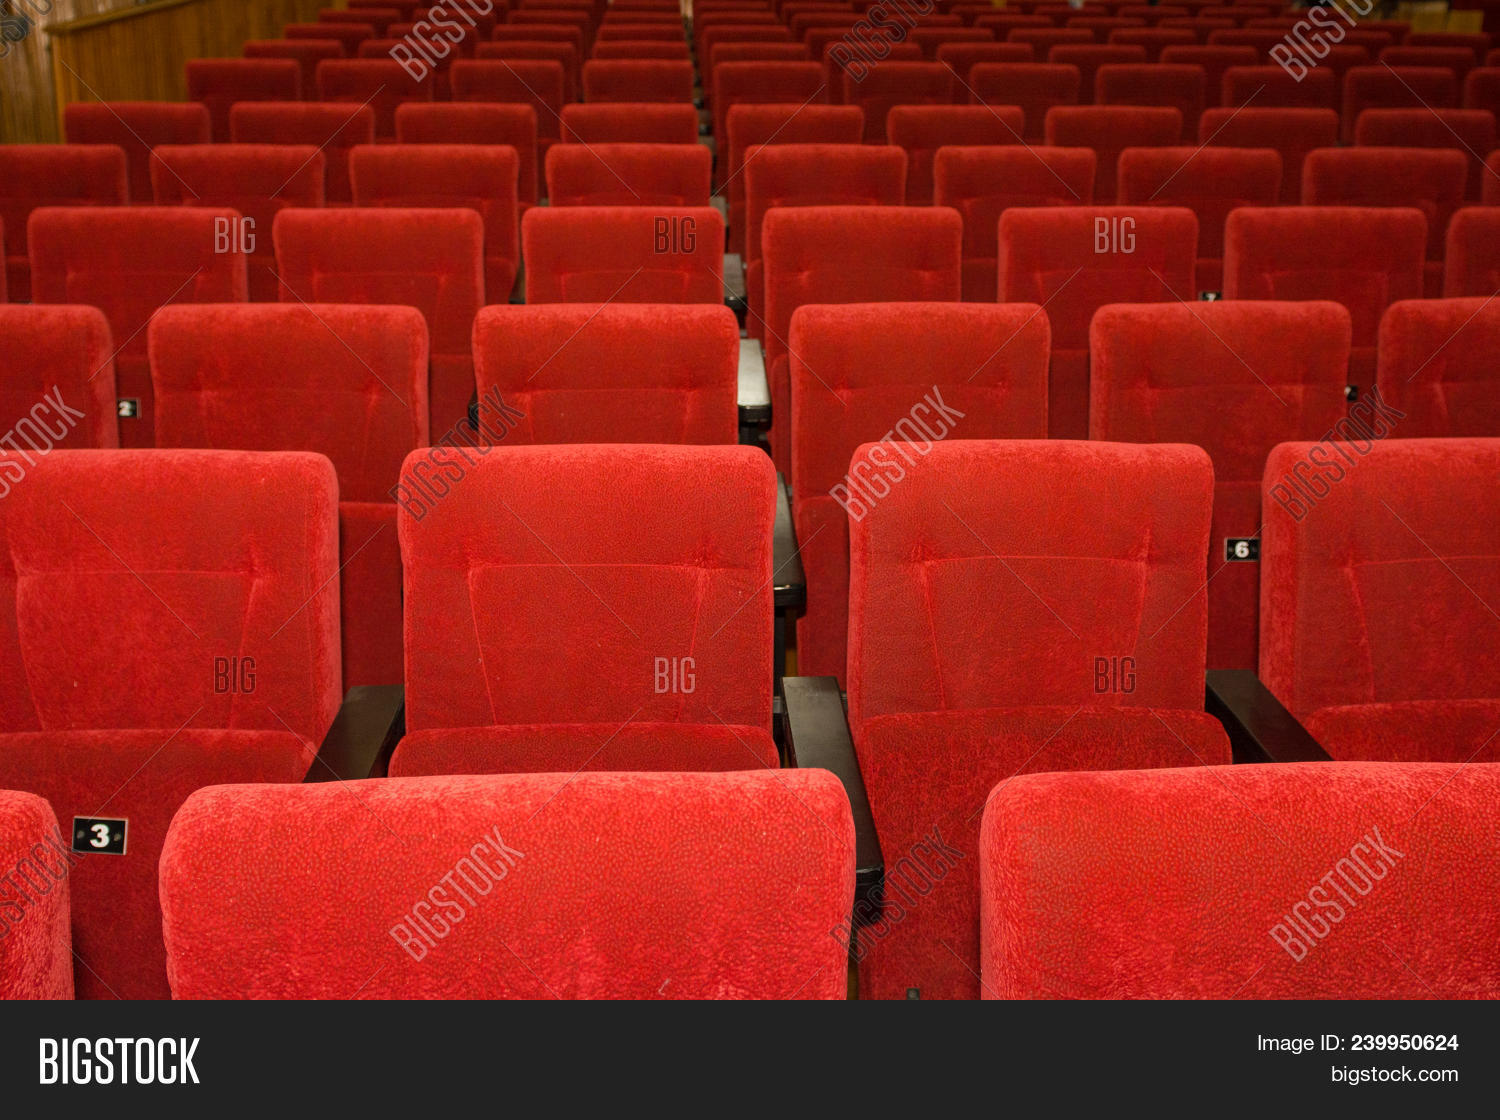 Seats In The Cinema Lots Of Seats In The Hall 239950624 Image Stock Photo